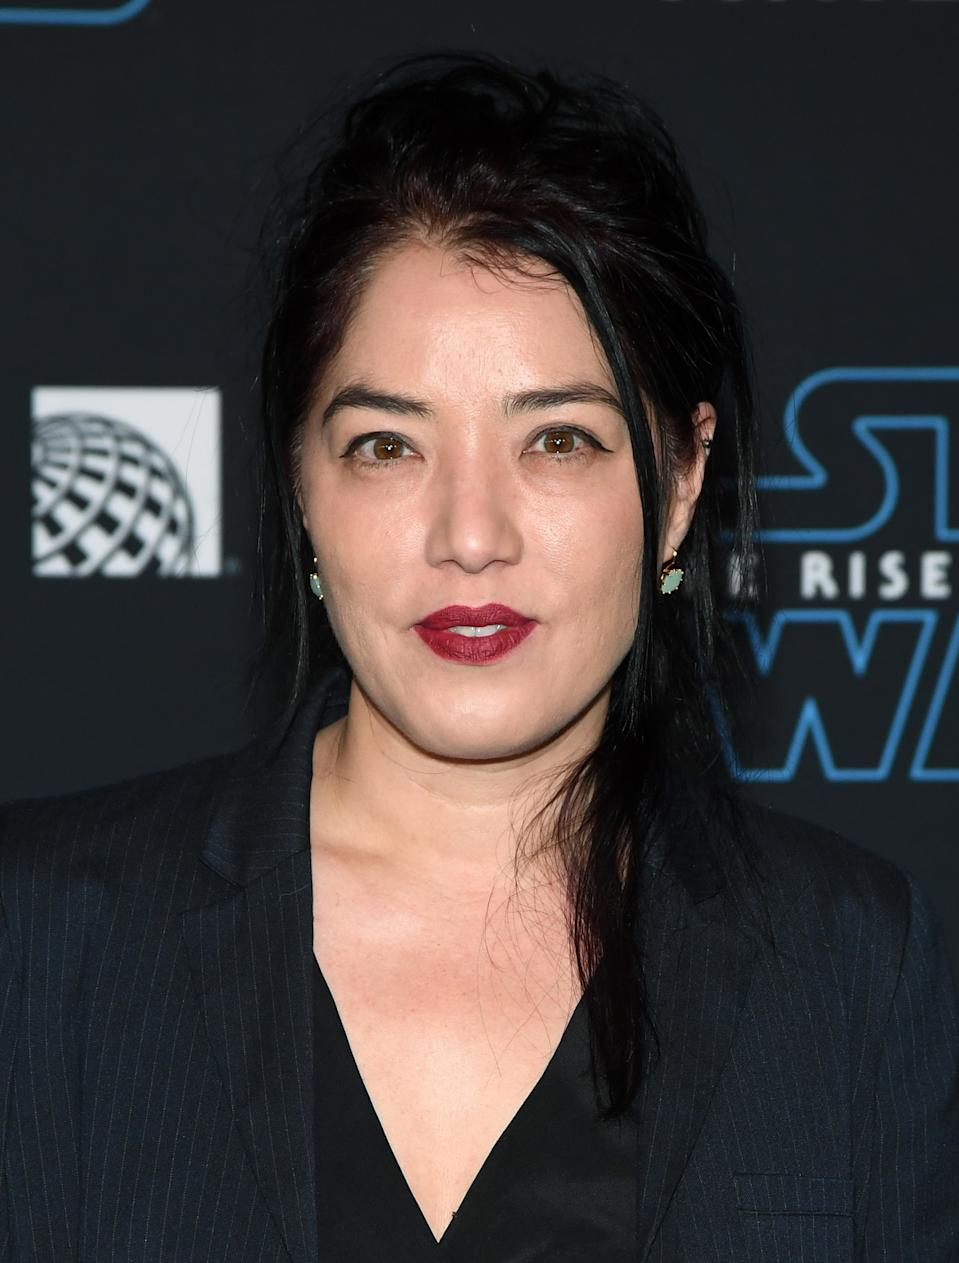 """HOLLYWOOD, CALIFORNIA - DECEMBER 16:  Director Deborah Chow attends the premiere of Disney's """"Star Wars: The Rise of Skywalker"""" on December 16, 2019 in Hollywood, California.  (Photo by Ethan Miller/FilmMagic)"""